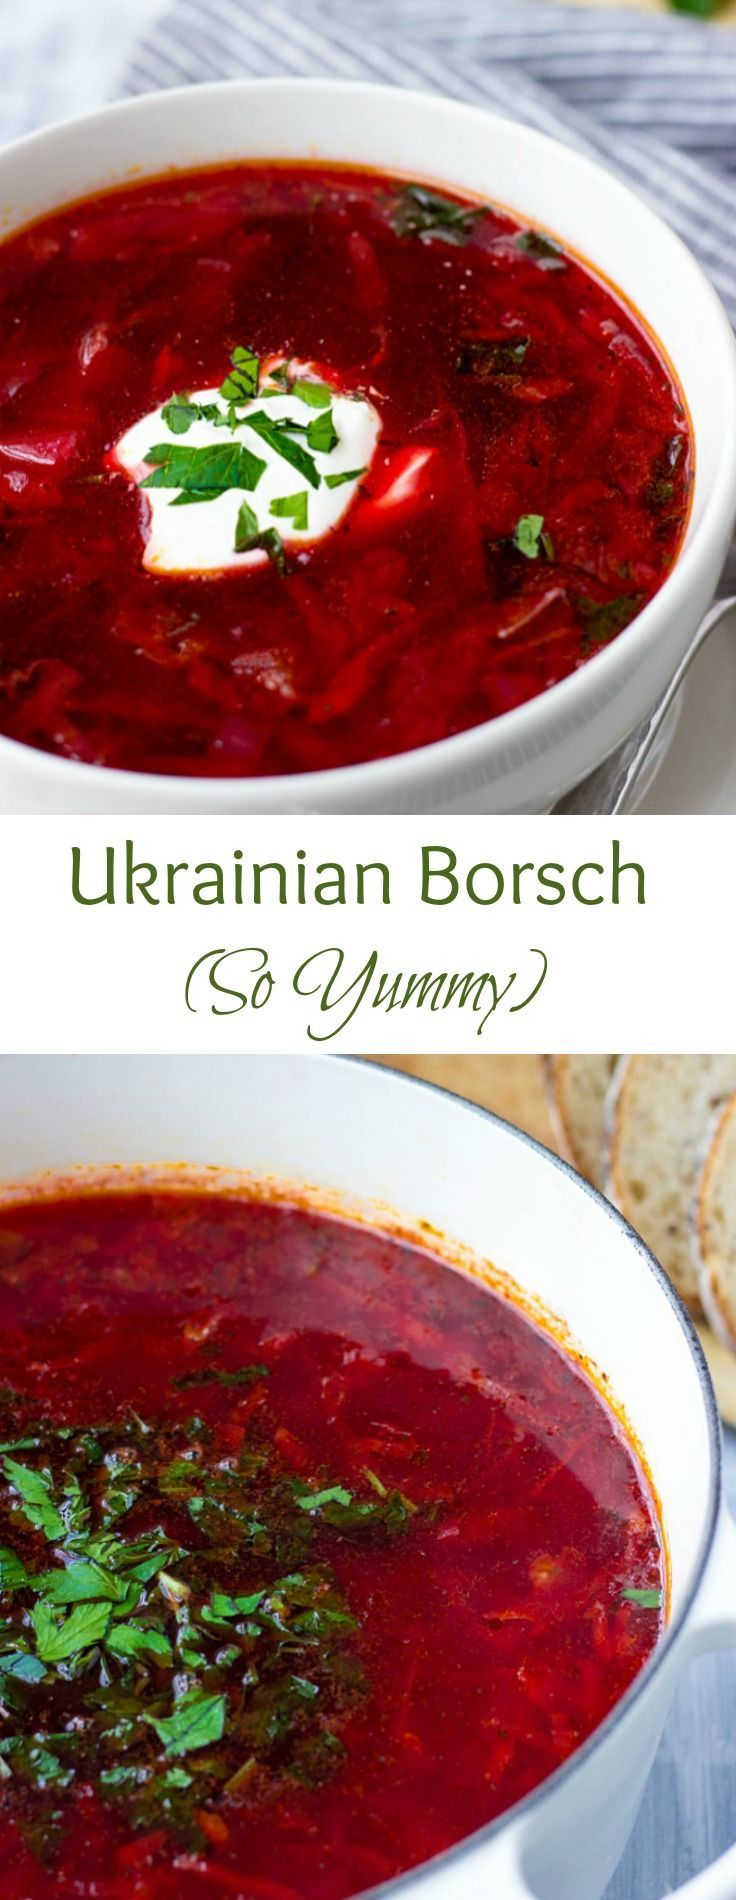 This is the only Borsch Recipe you need to know. It's full of hearty vegetables, flavorful and super delicious. It's a comfort food you'll be craving again.